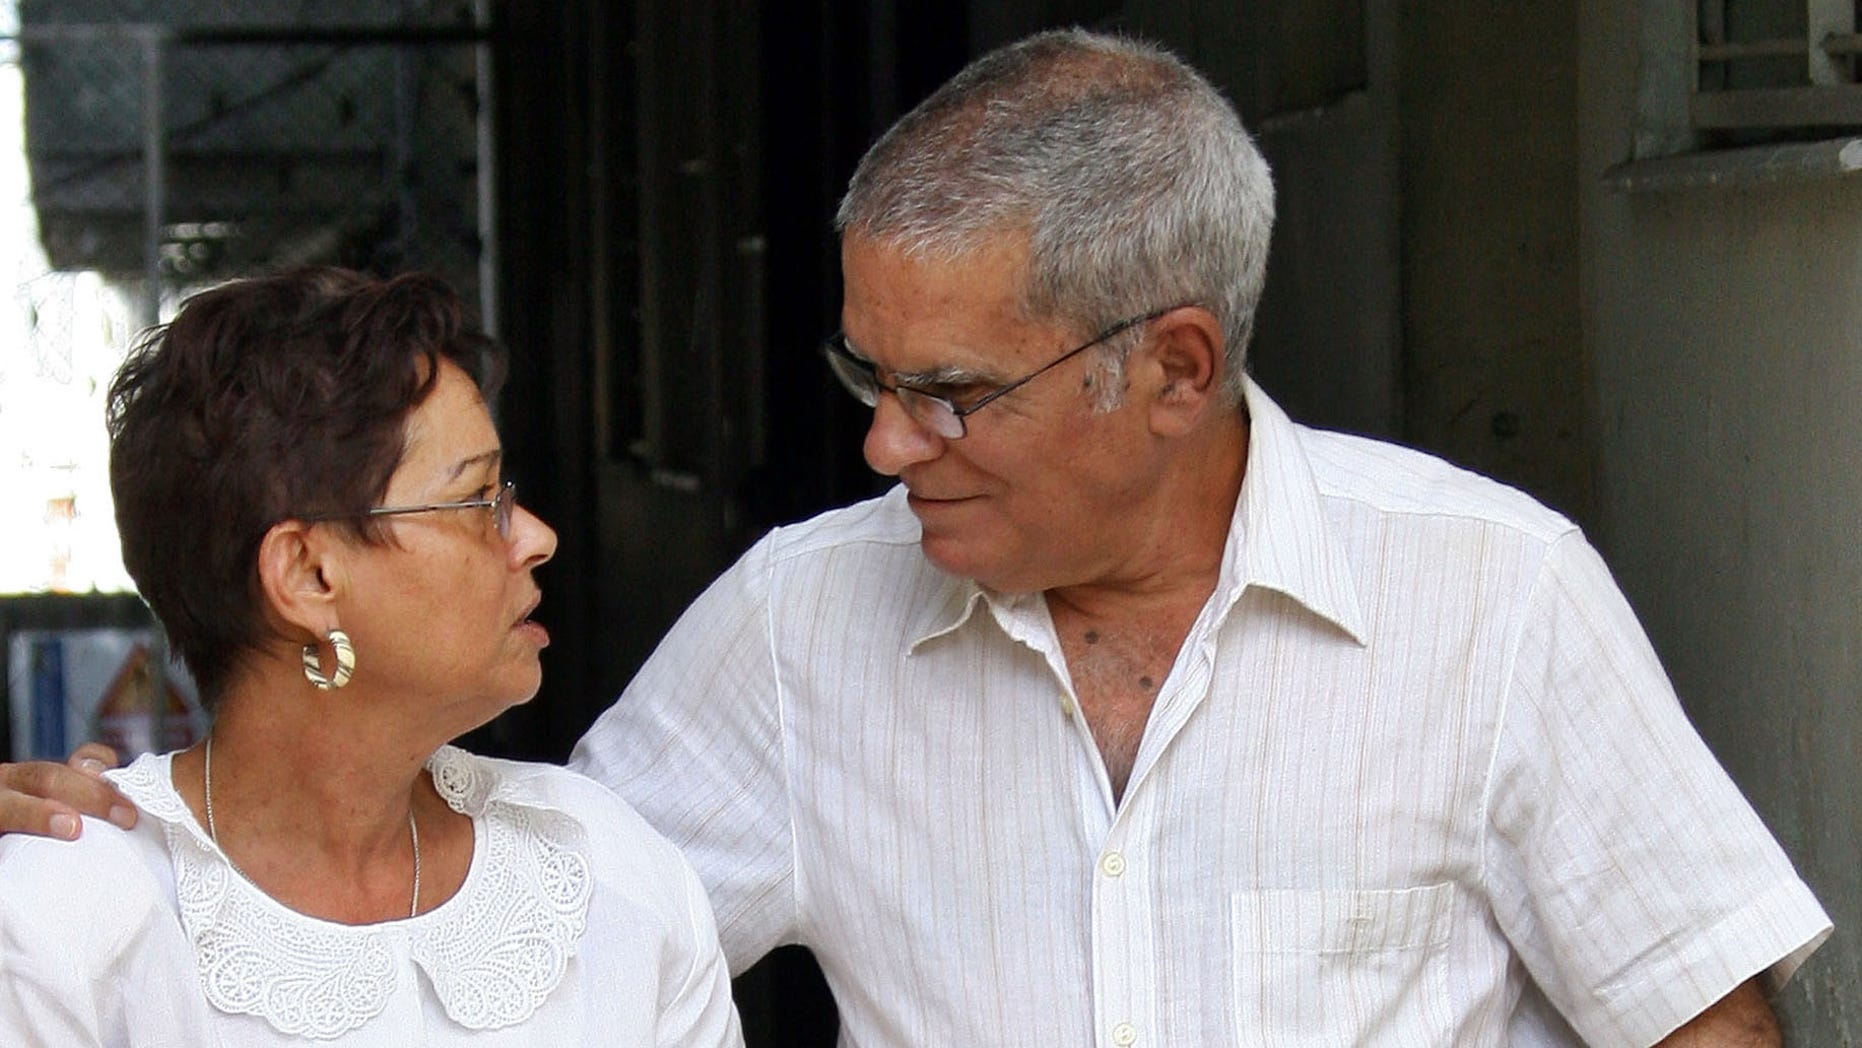 FILE - In this Nov. 29, 2004 file photo, Oscar Espinosa Chepe walks with his wife Miriam Leiva at their home after being freed on parole from prison where he was serving a twenty-year sentence, in Havana, Cuba.  Due to serious liver problems, Espinosa Chepe has been on an intravenous drip at a Havana hospital for more than a week, as of Monday, Sept. 3, 2012, and unable to even drink liquids until Monday morning, according to his wife Miriam Leiva, herself a leading dissident.  (AP Photo/Jose Goitia, File)